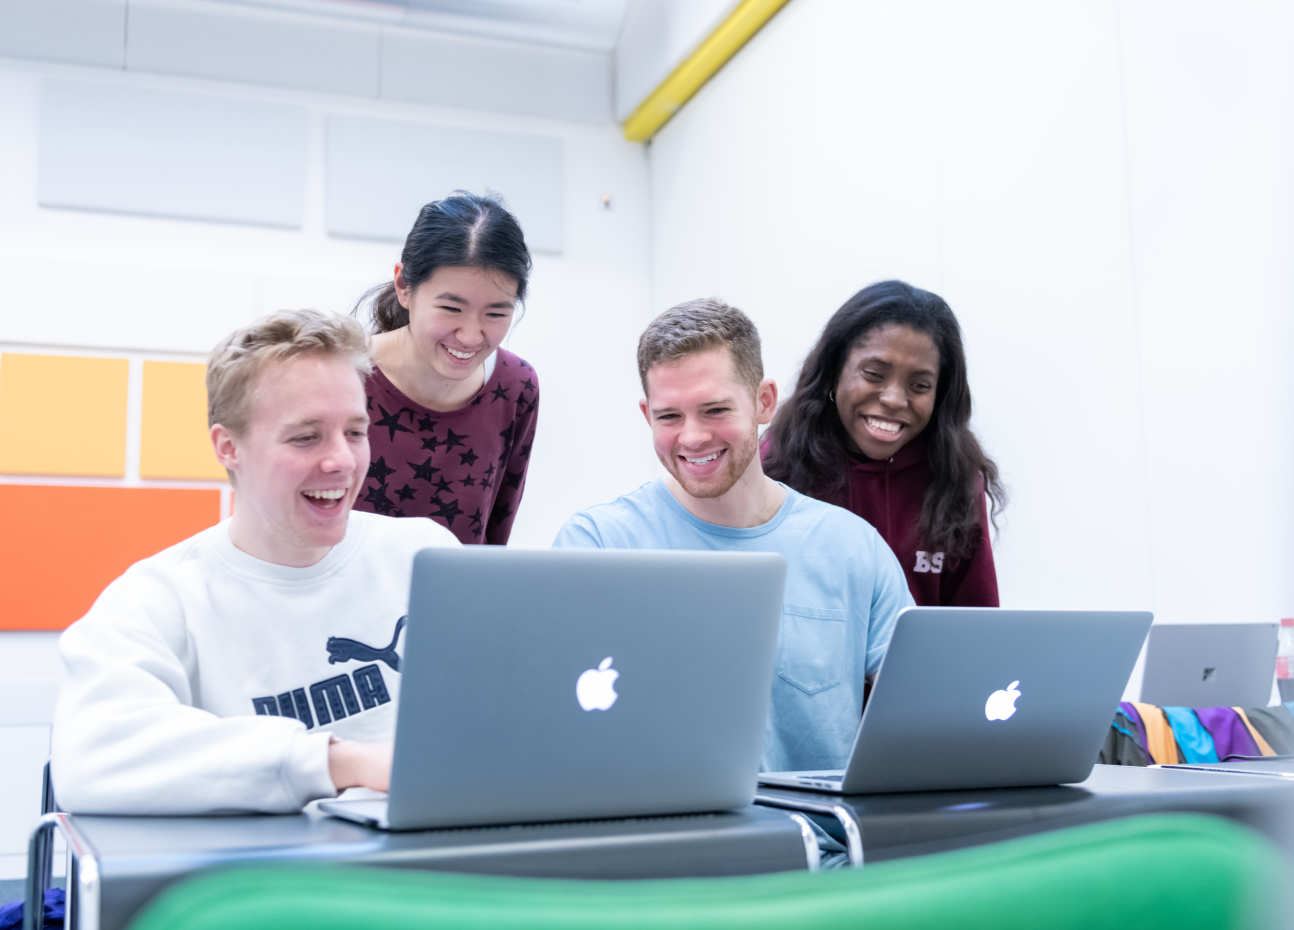 Applied Computational Science and Engineering MSc students working together on laptops